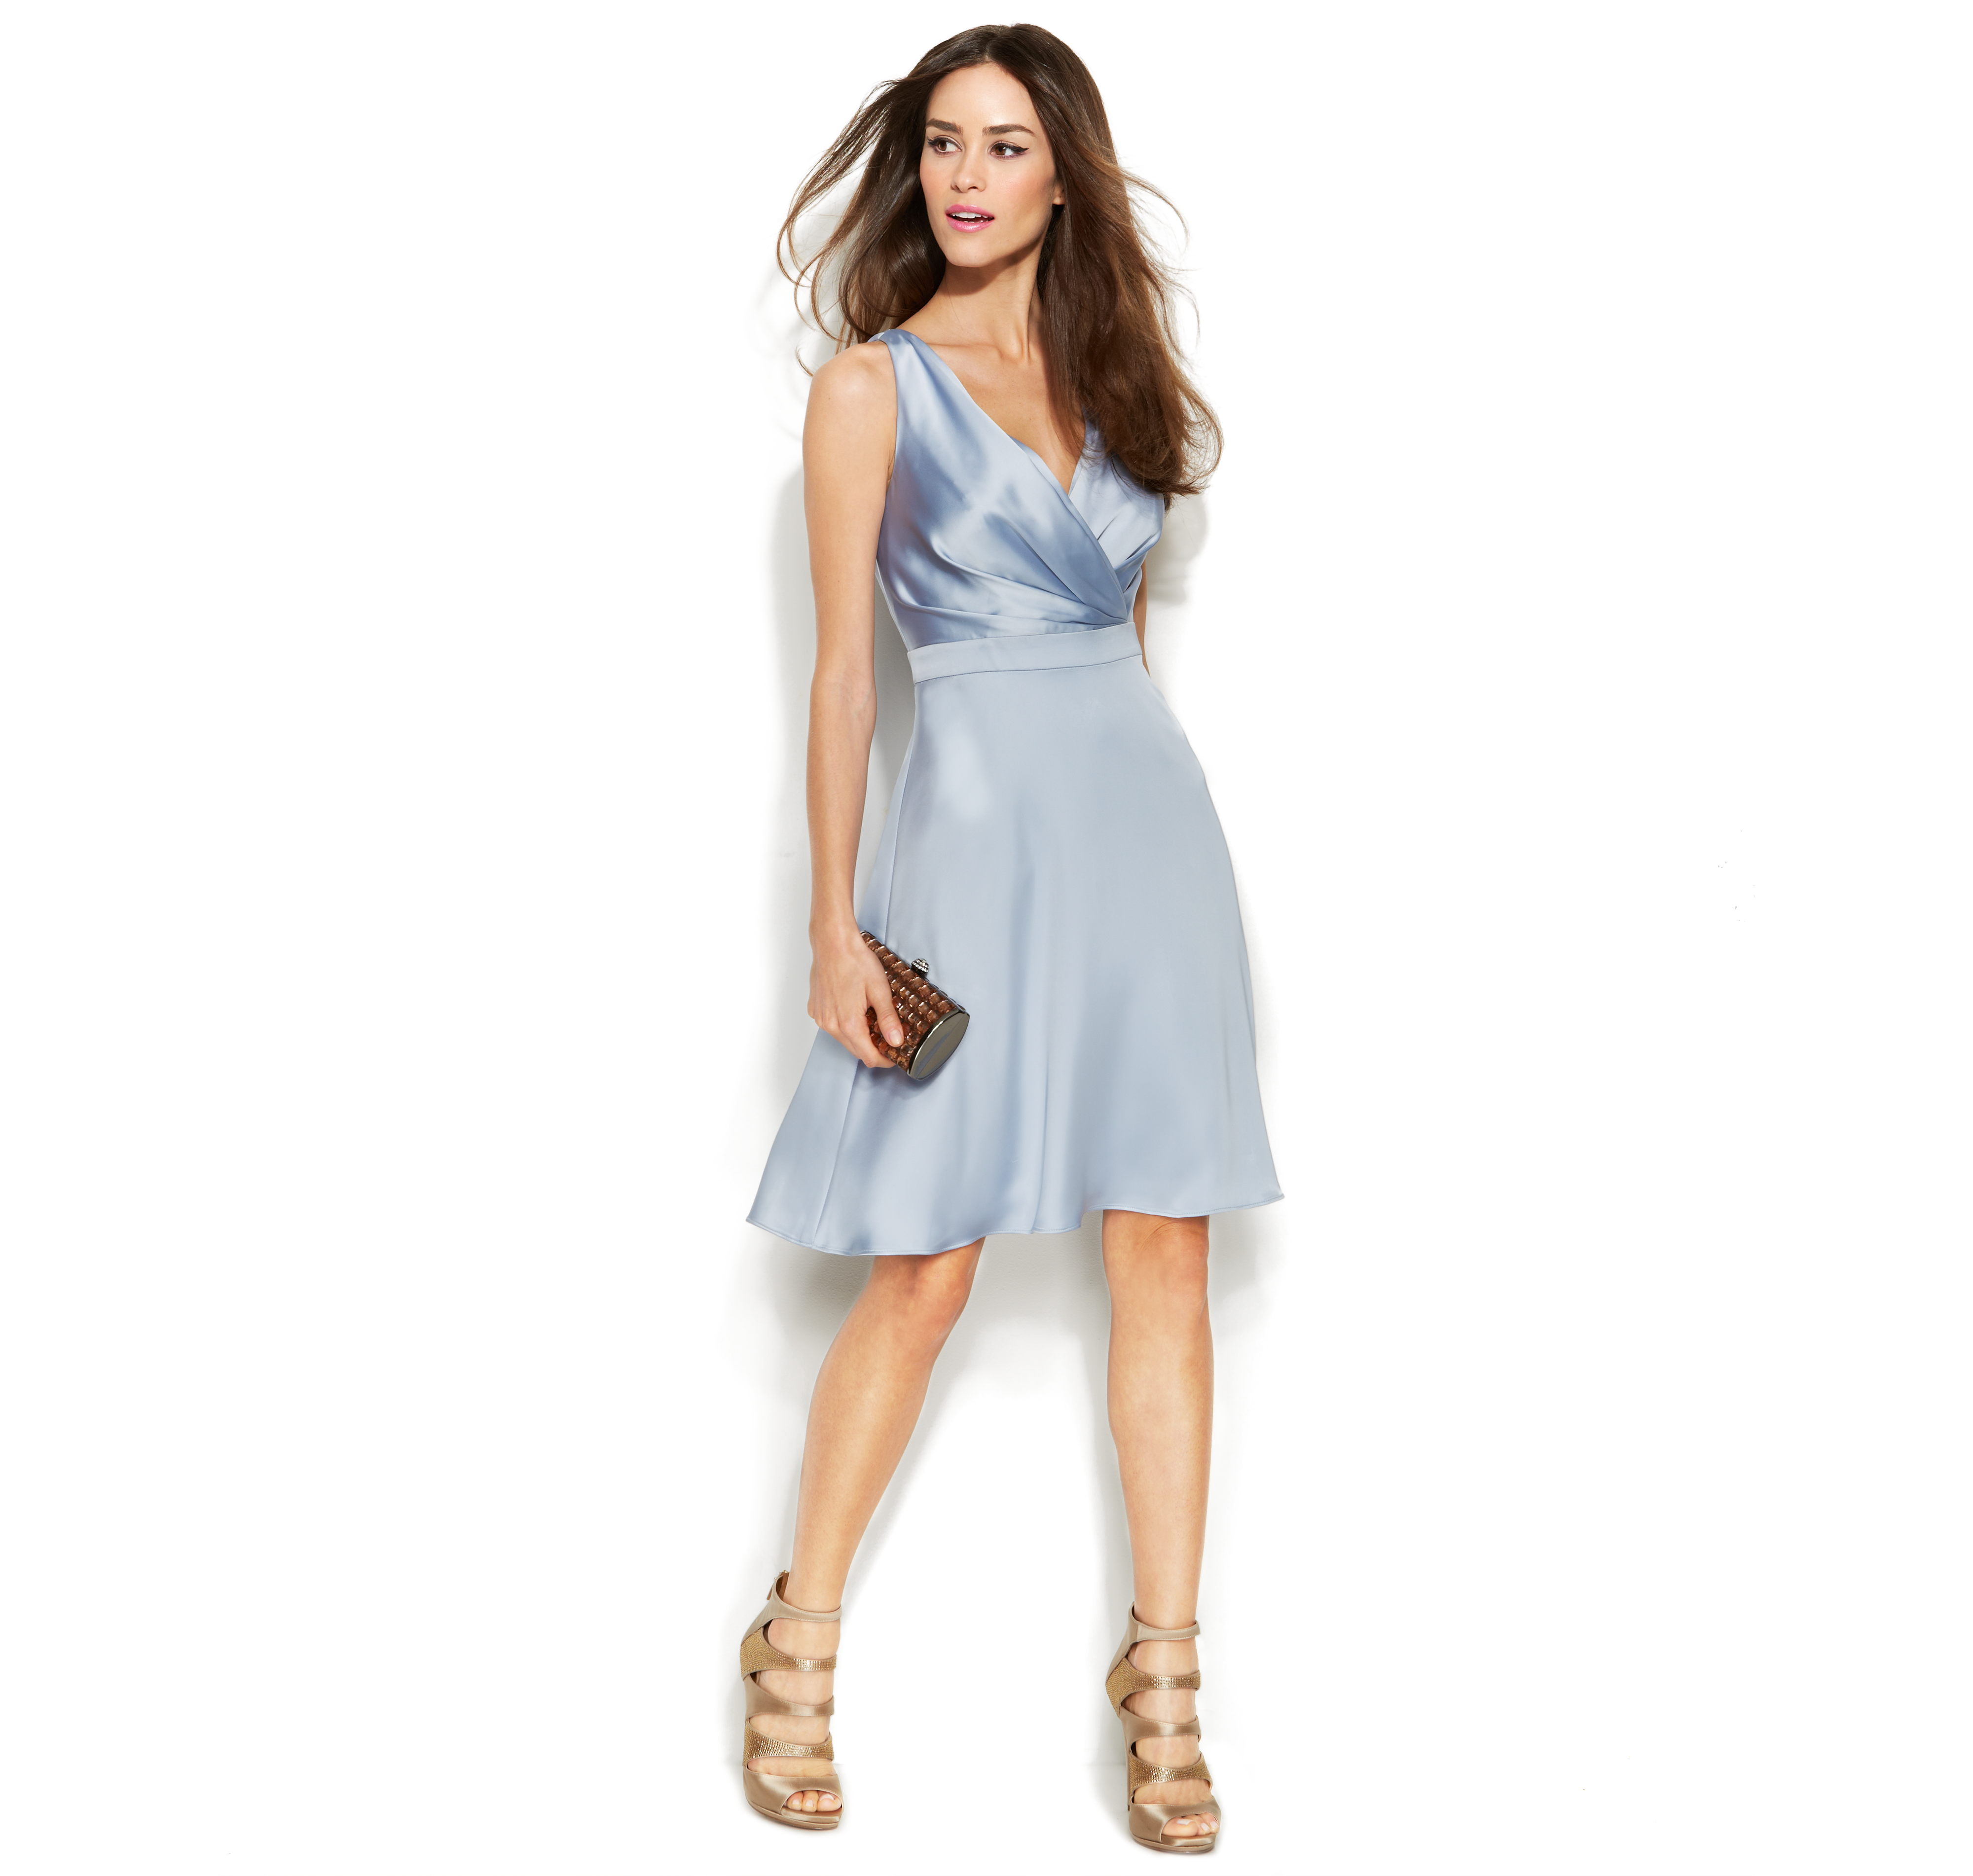 Calvin Klein Wedding Gowns: Calvin Klein Sleeveless Satin Surplice-Neck Dress